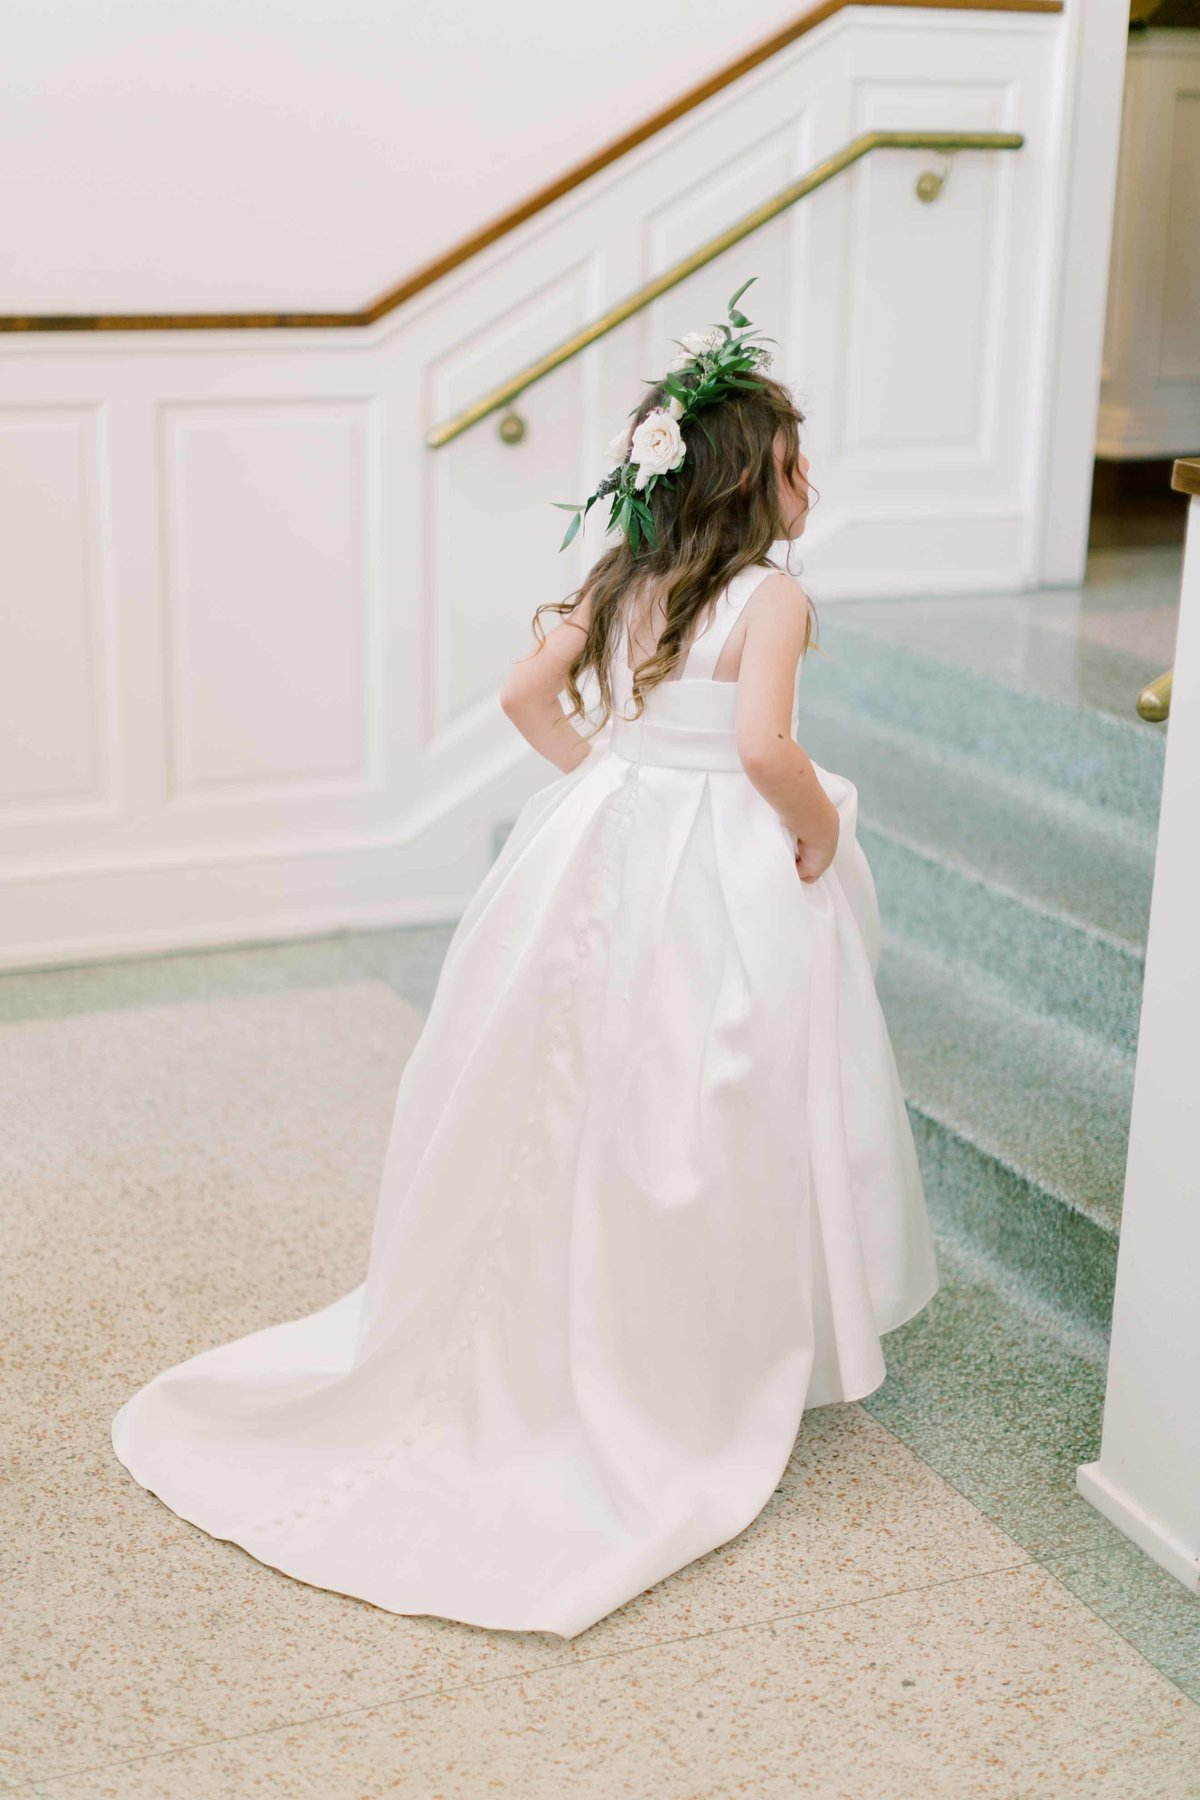 Angel_owens_photography_wedding_oliviarobert101